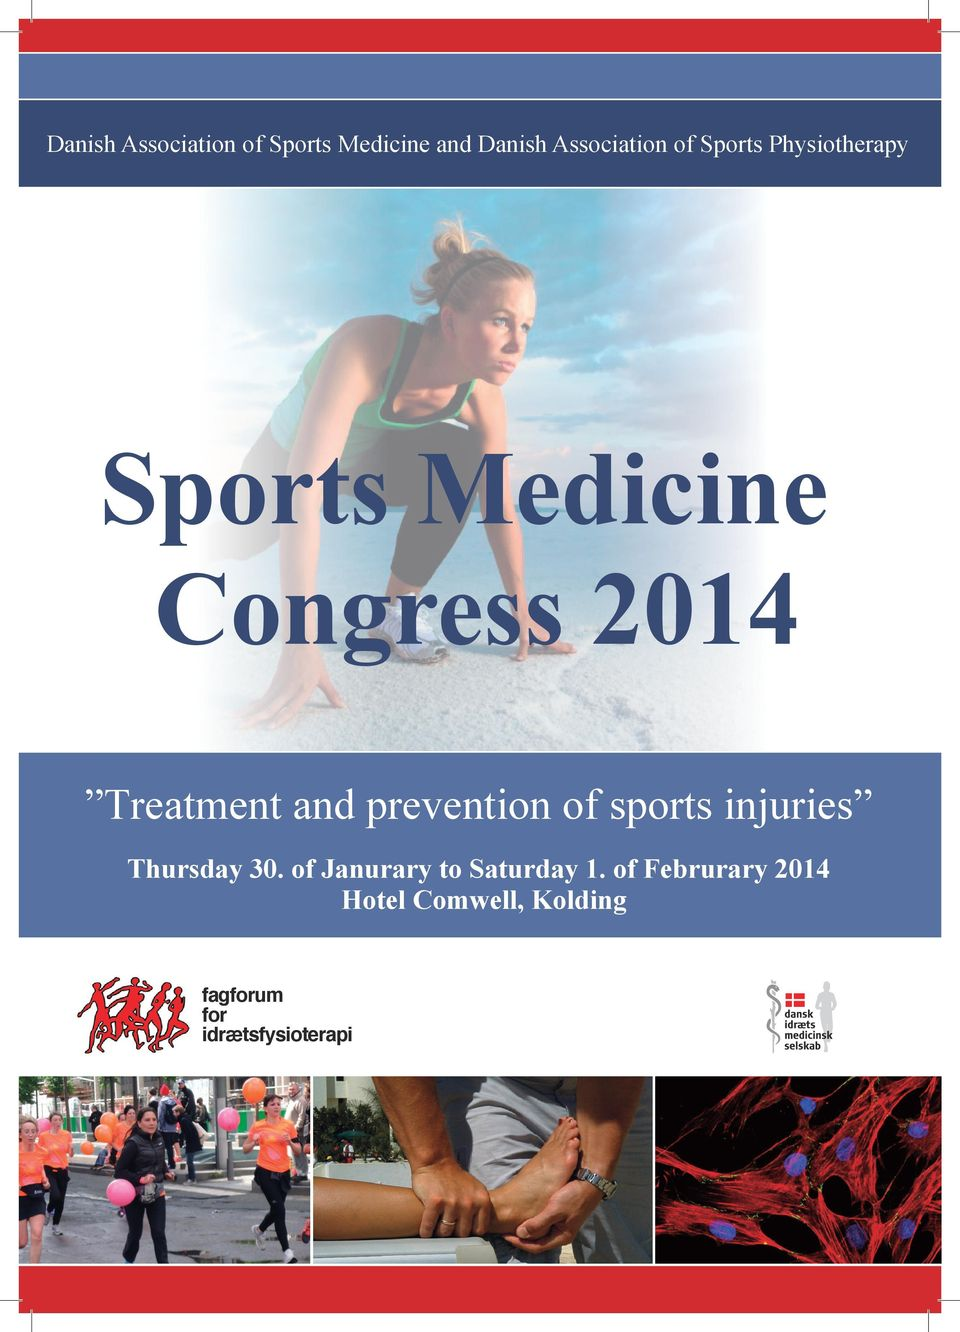 prevention of sports injuries Thursday 30.